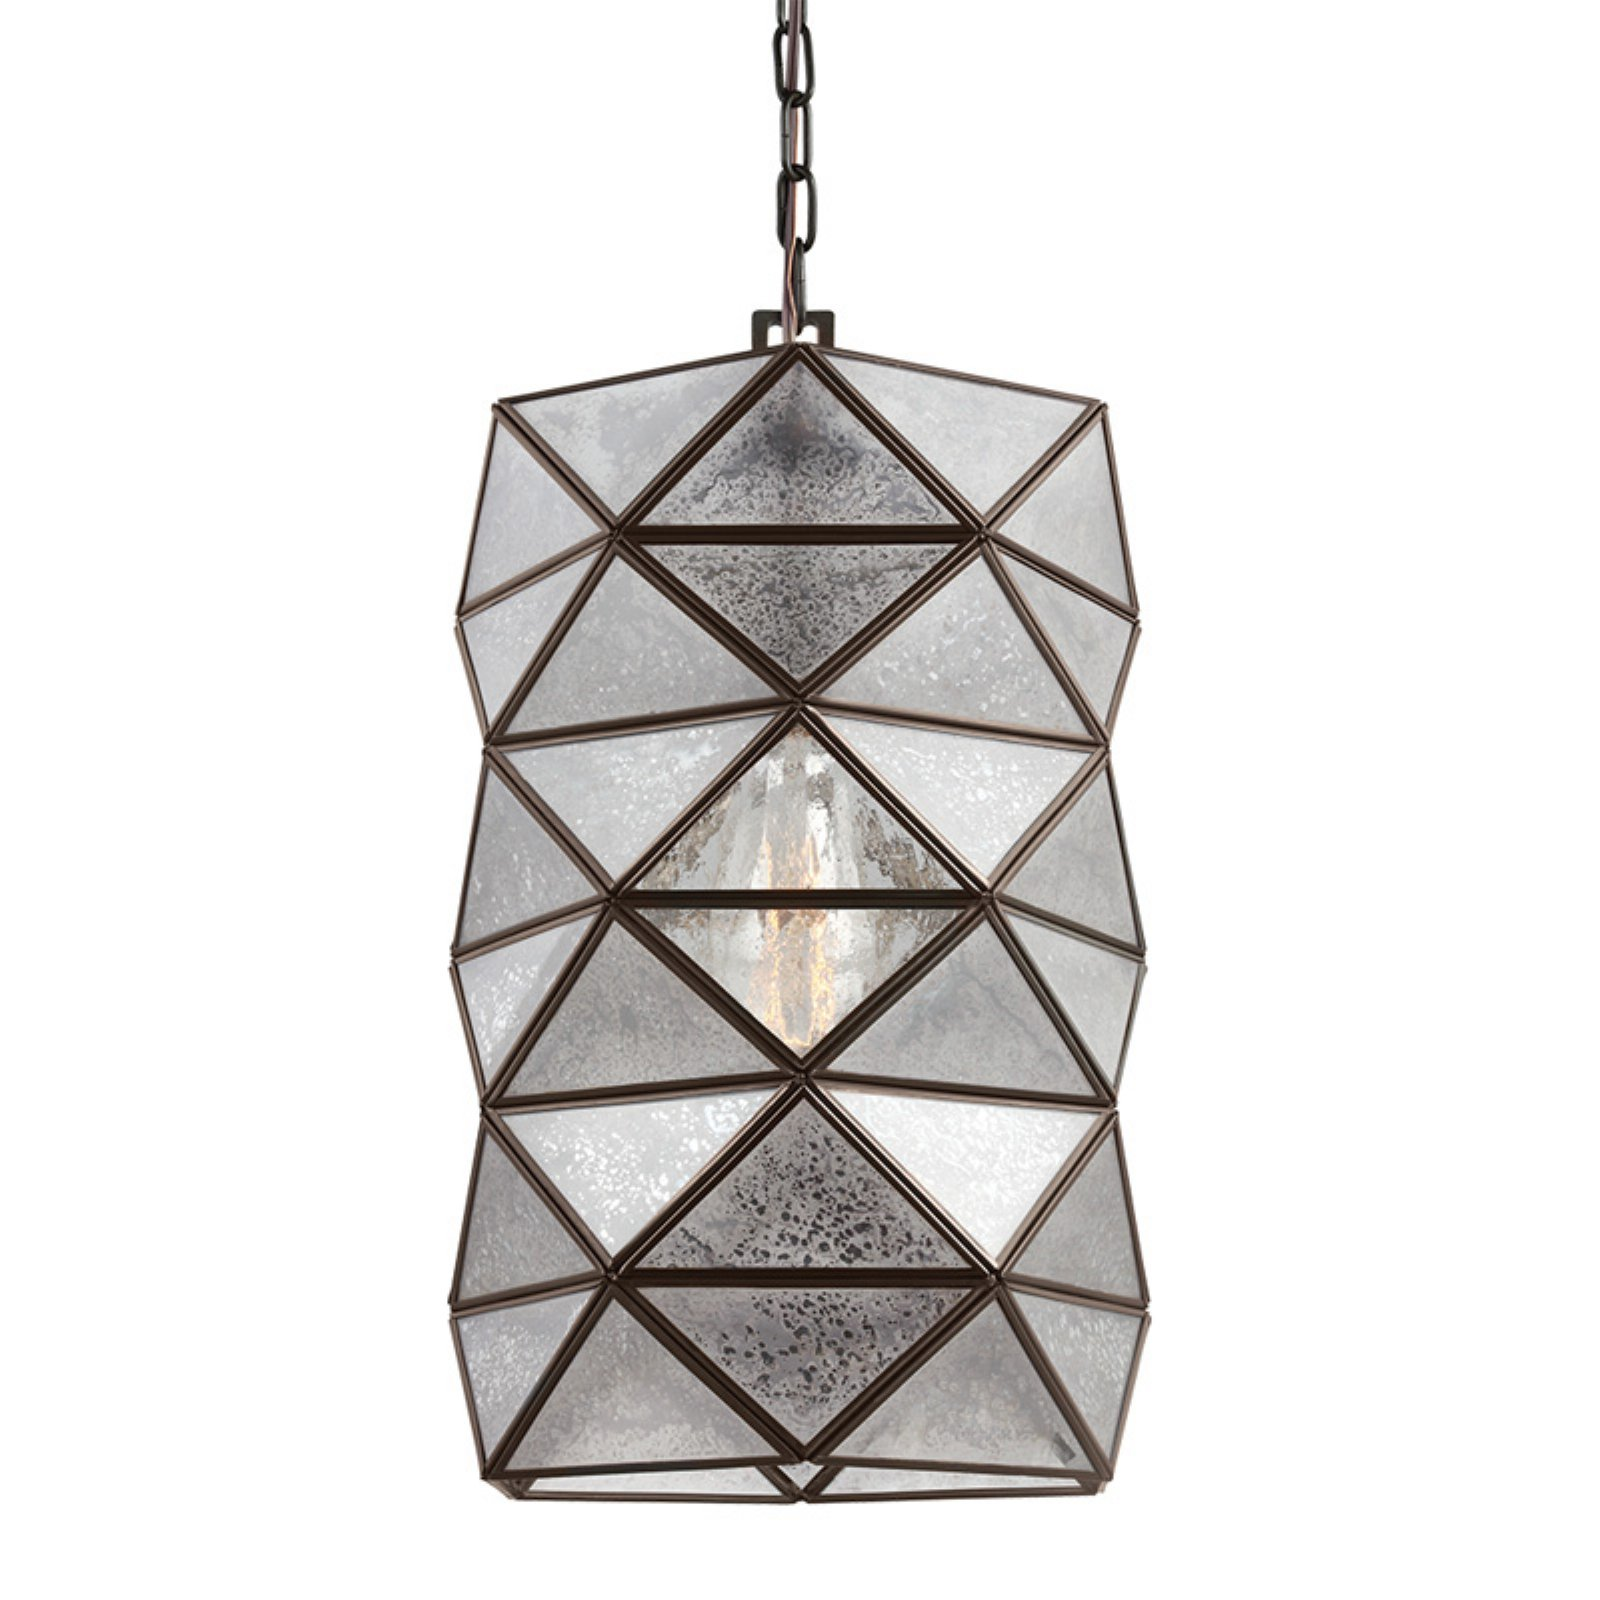 Sea Gull Lighting Harambee 6641401 Large 1-Light Pendant